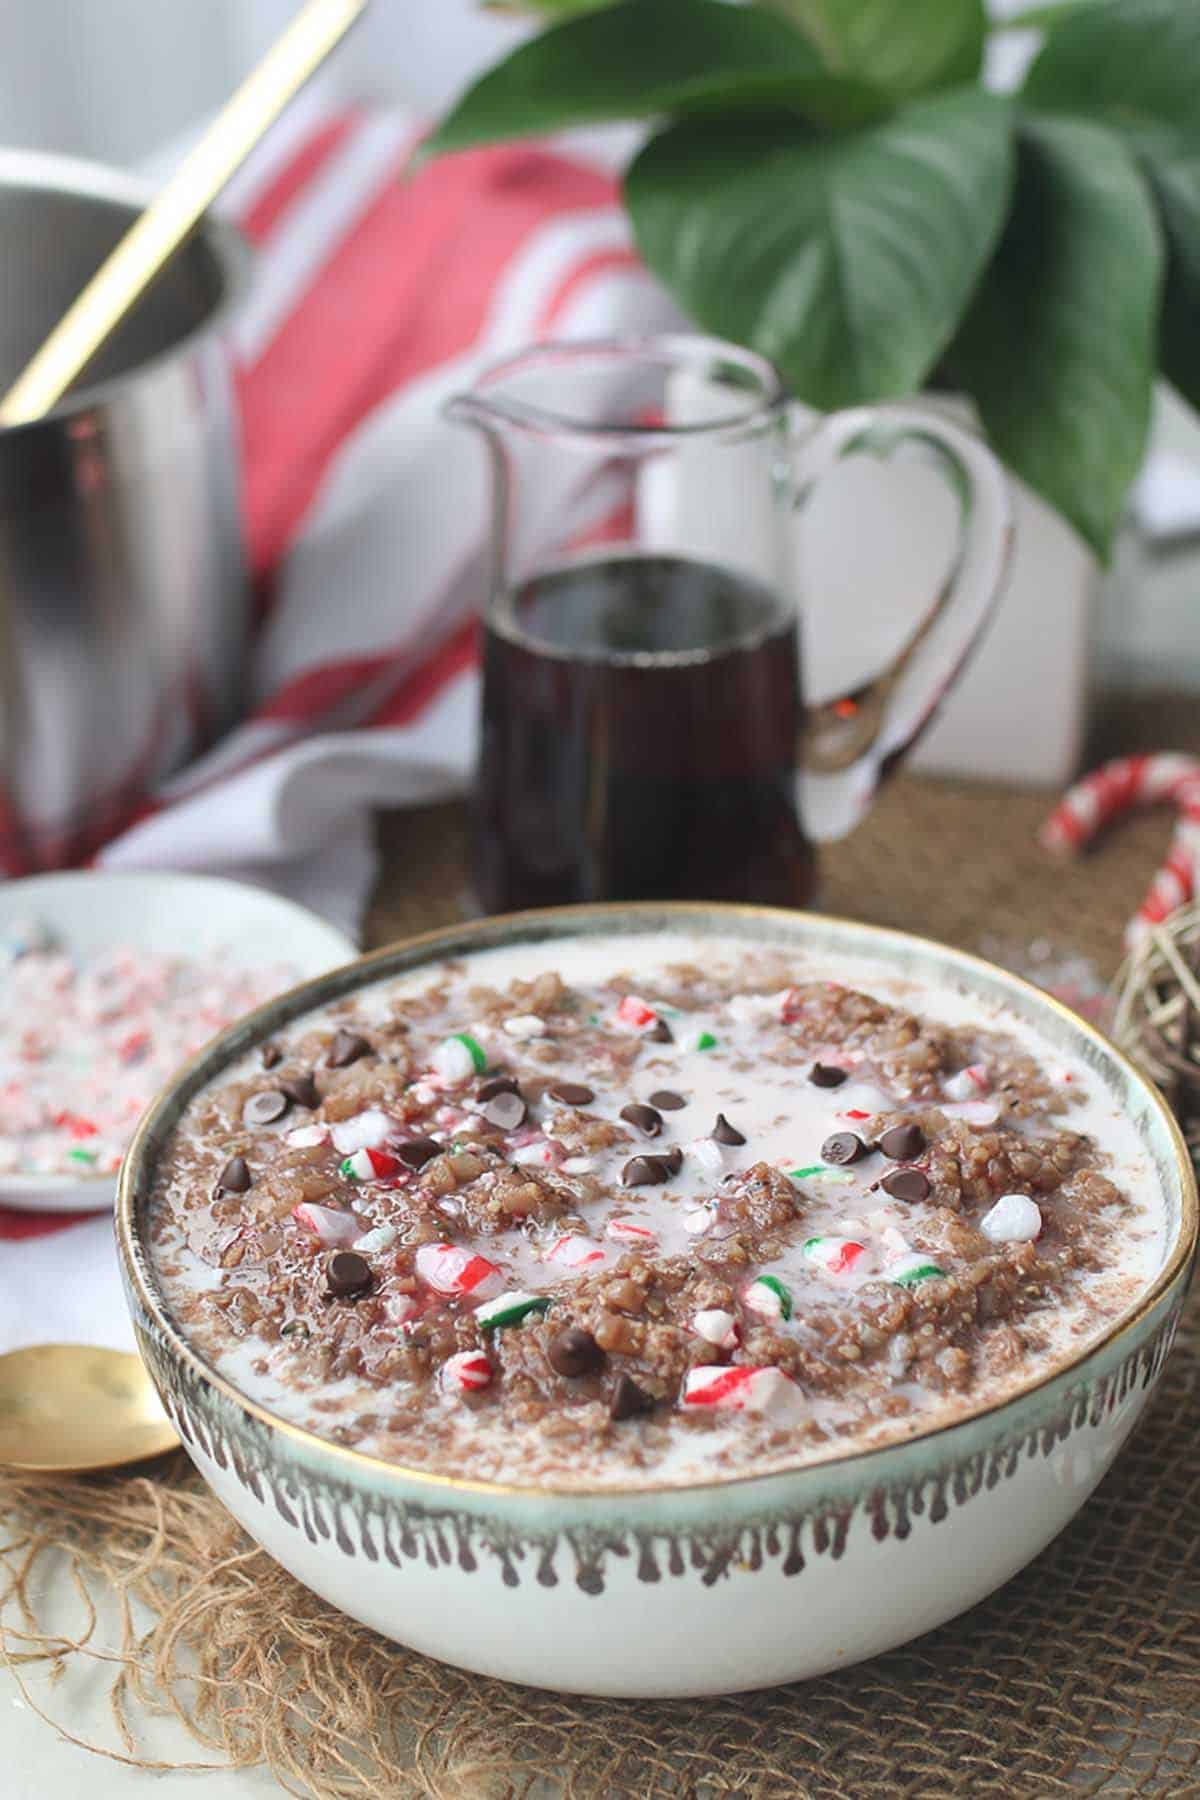 Christmas porridge in a white bowl topped with chocolate chips and candy canes.